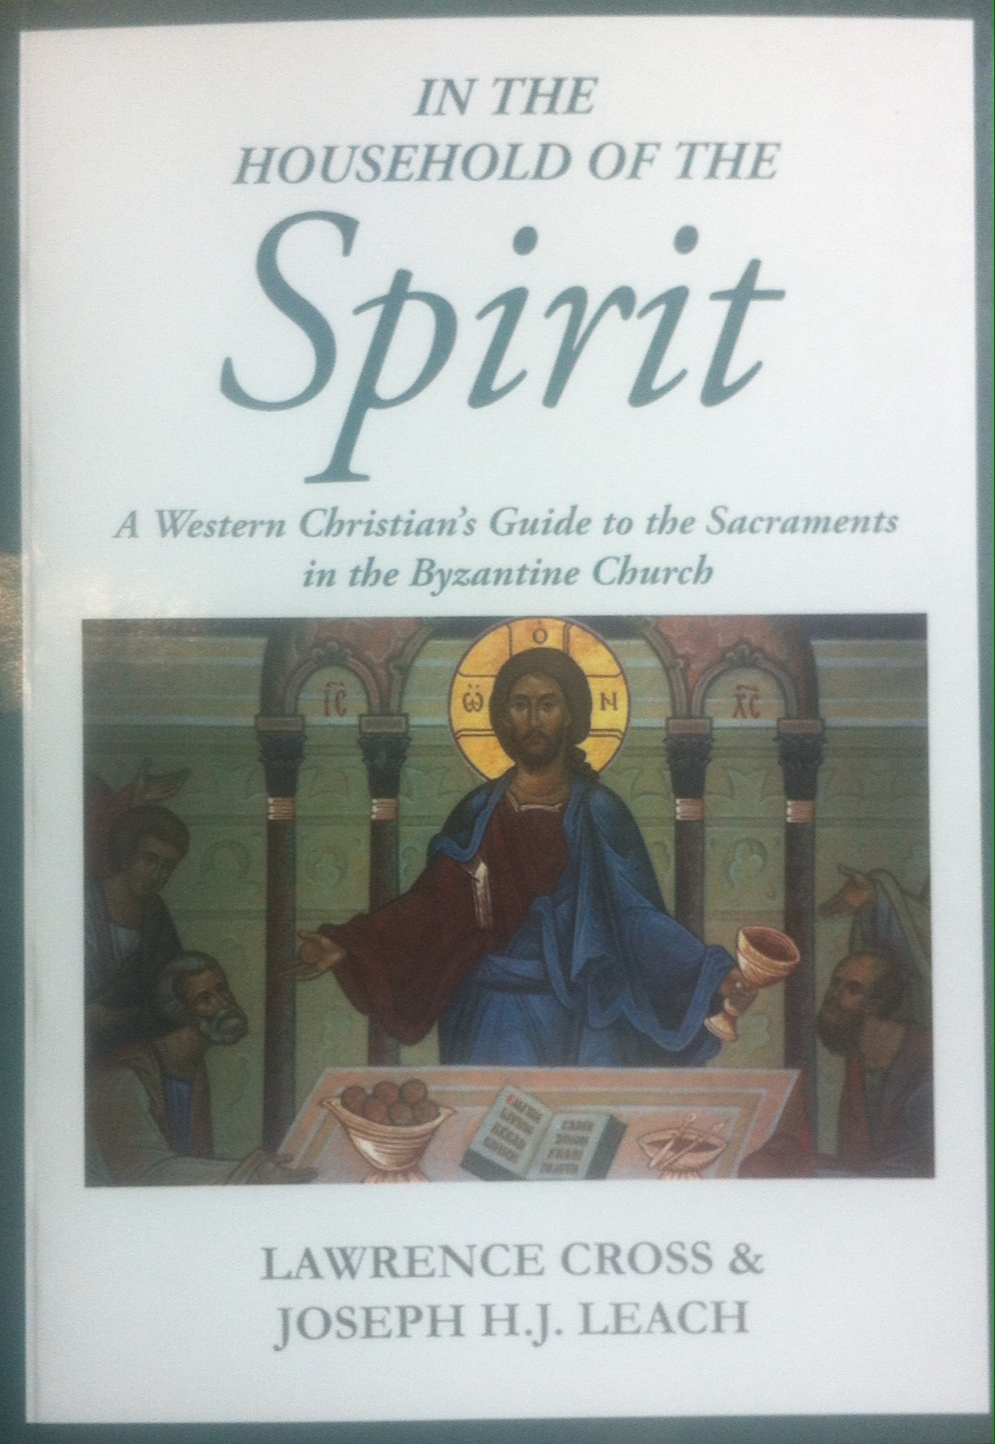 In the Household of the Spirit: a Western Christian's Guide to the Sacraments in the Byzantine Church / Lawrence Cross & Joseph H.J. Leach